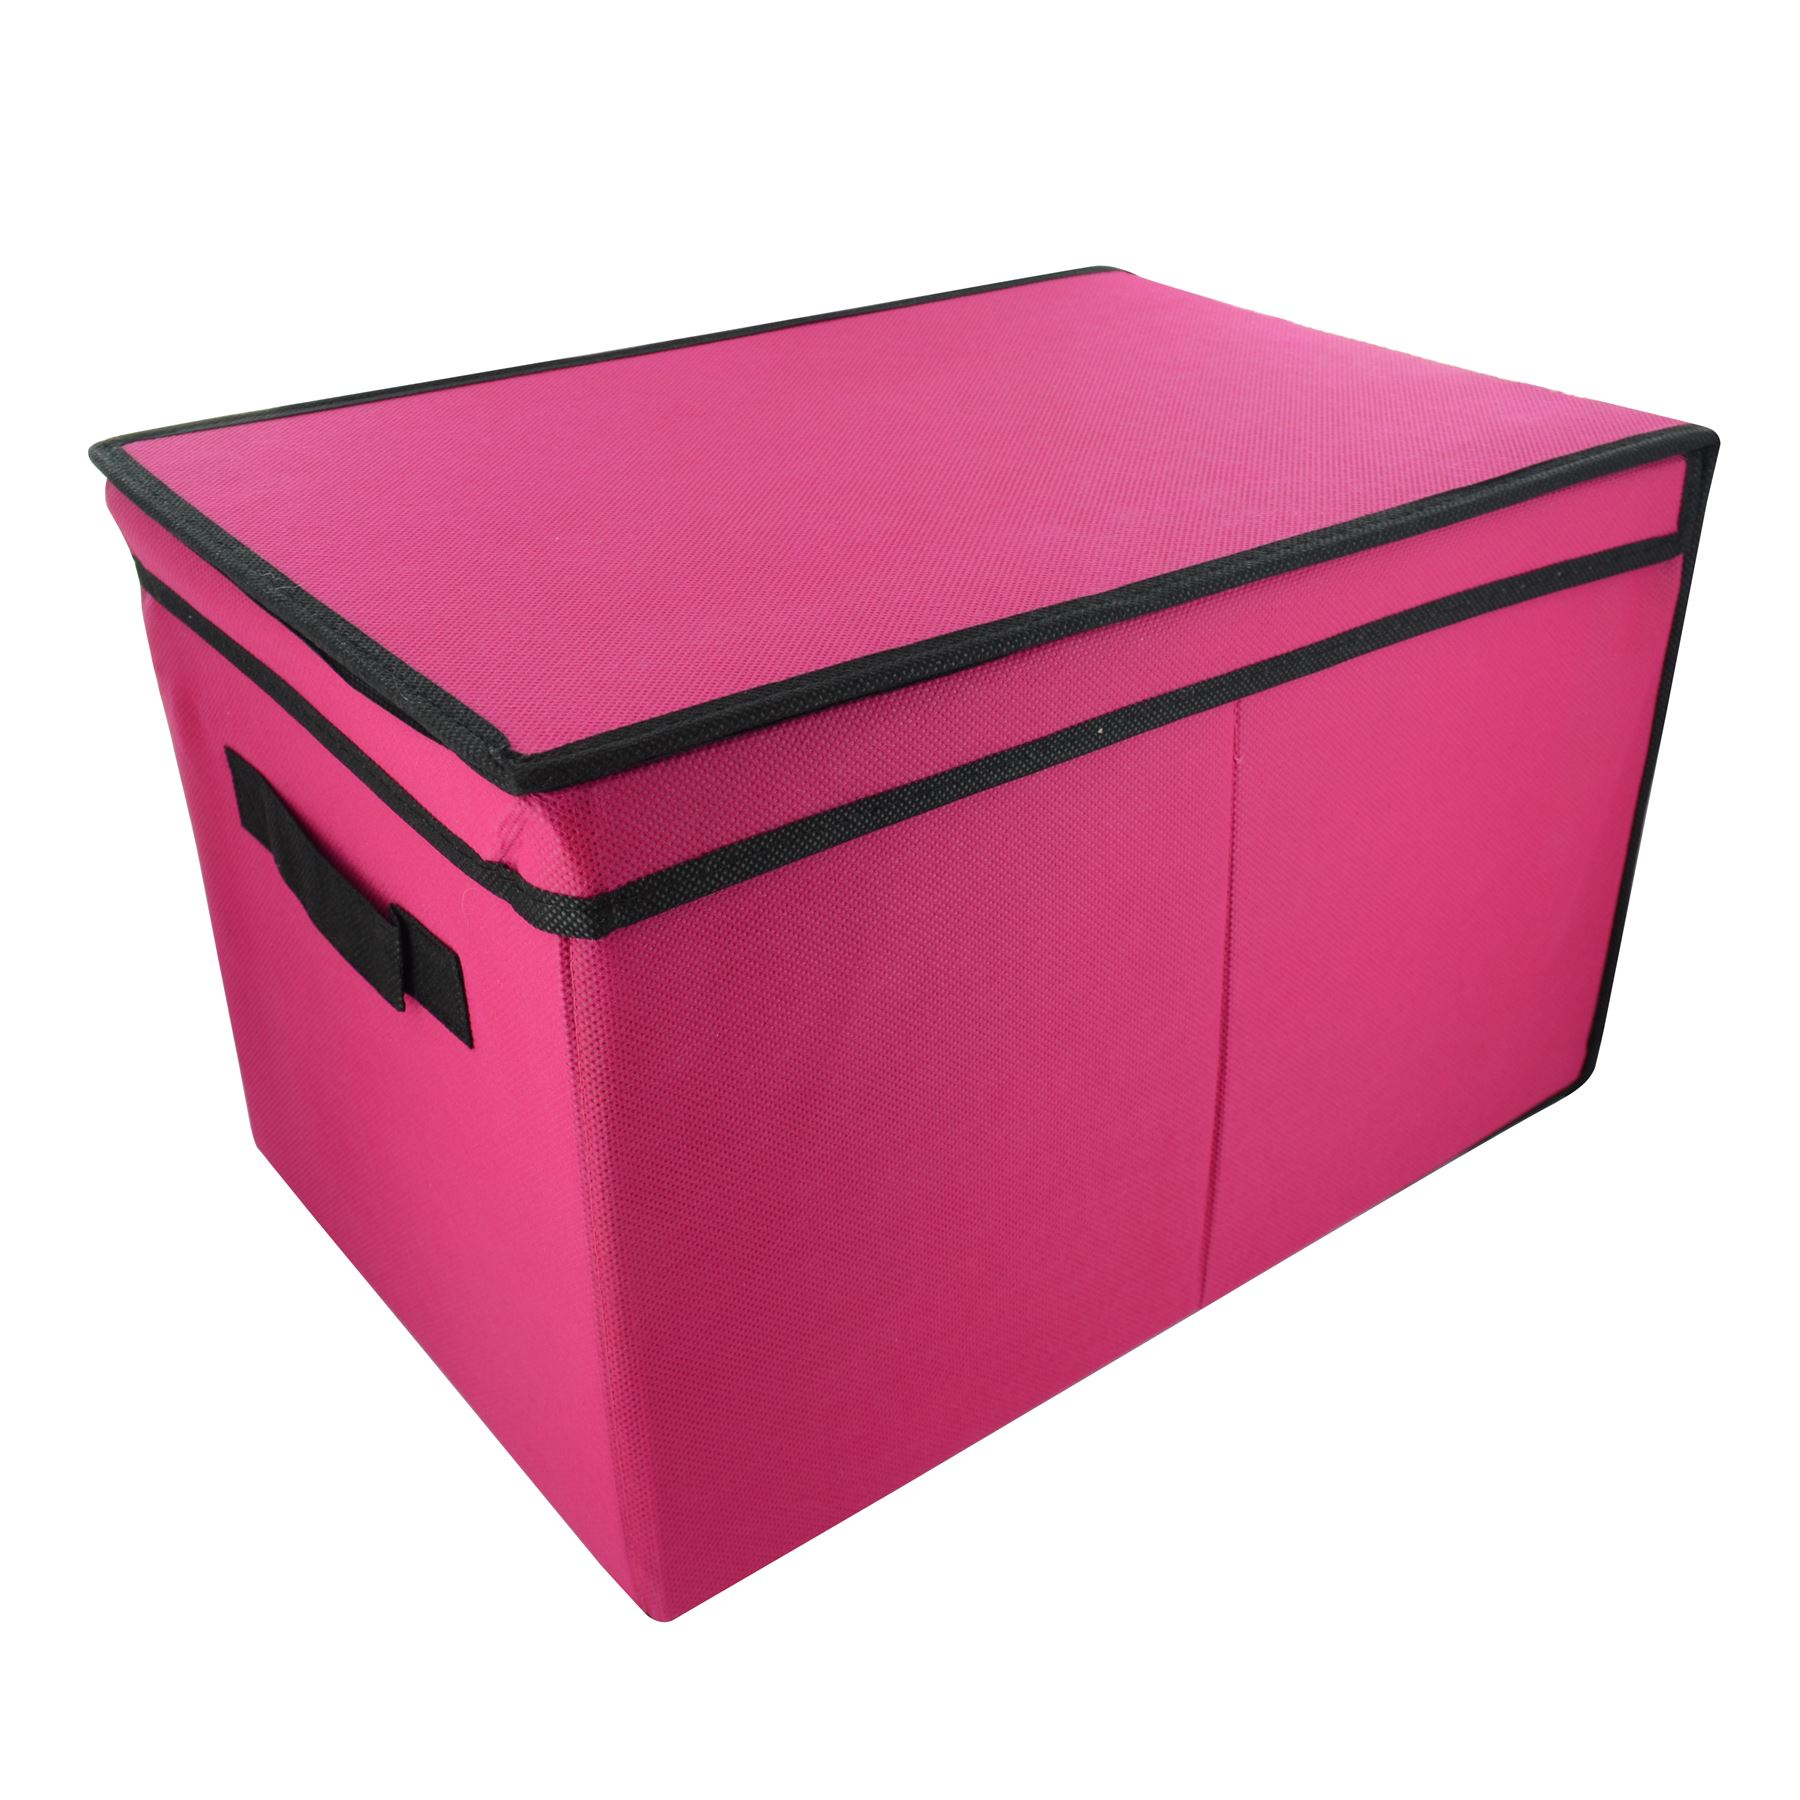 ... -Tote-Canvas-Storage-Toy-Box-Foldable-Lid-Books-Clothes-Tidy-Handle